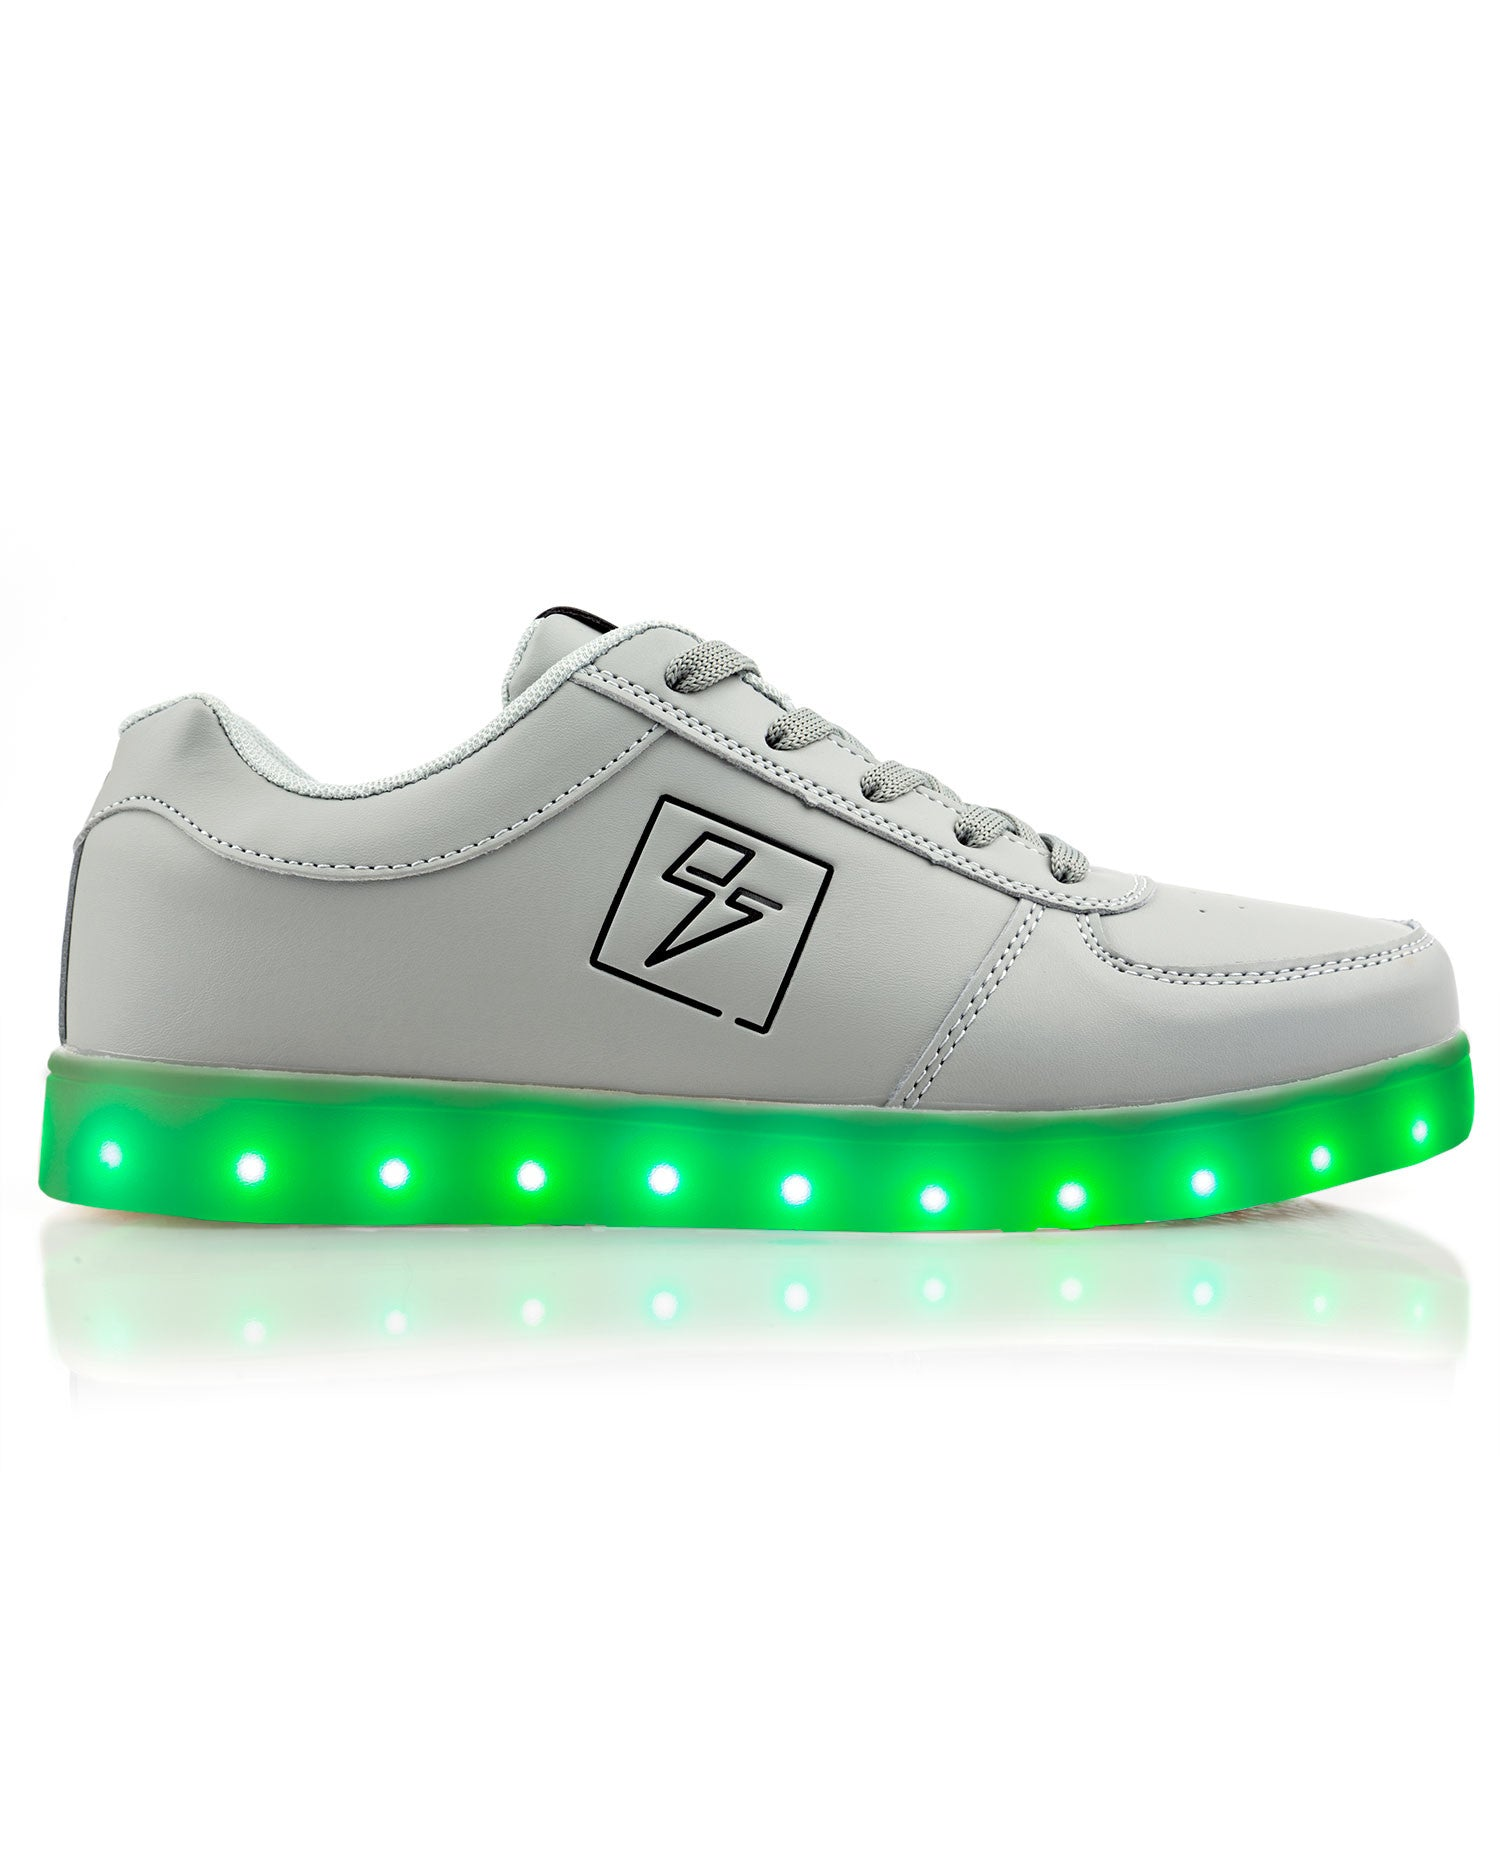 Light Up LED Shoes - Bolt